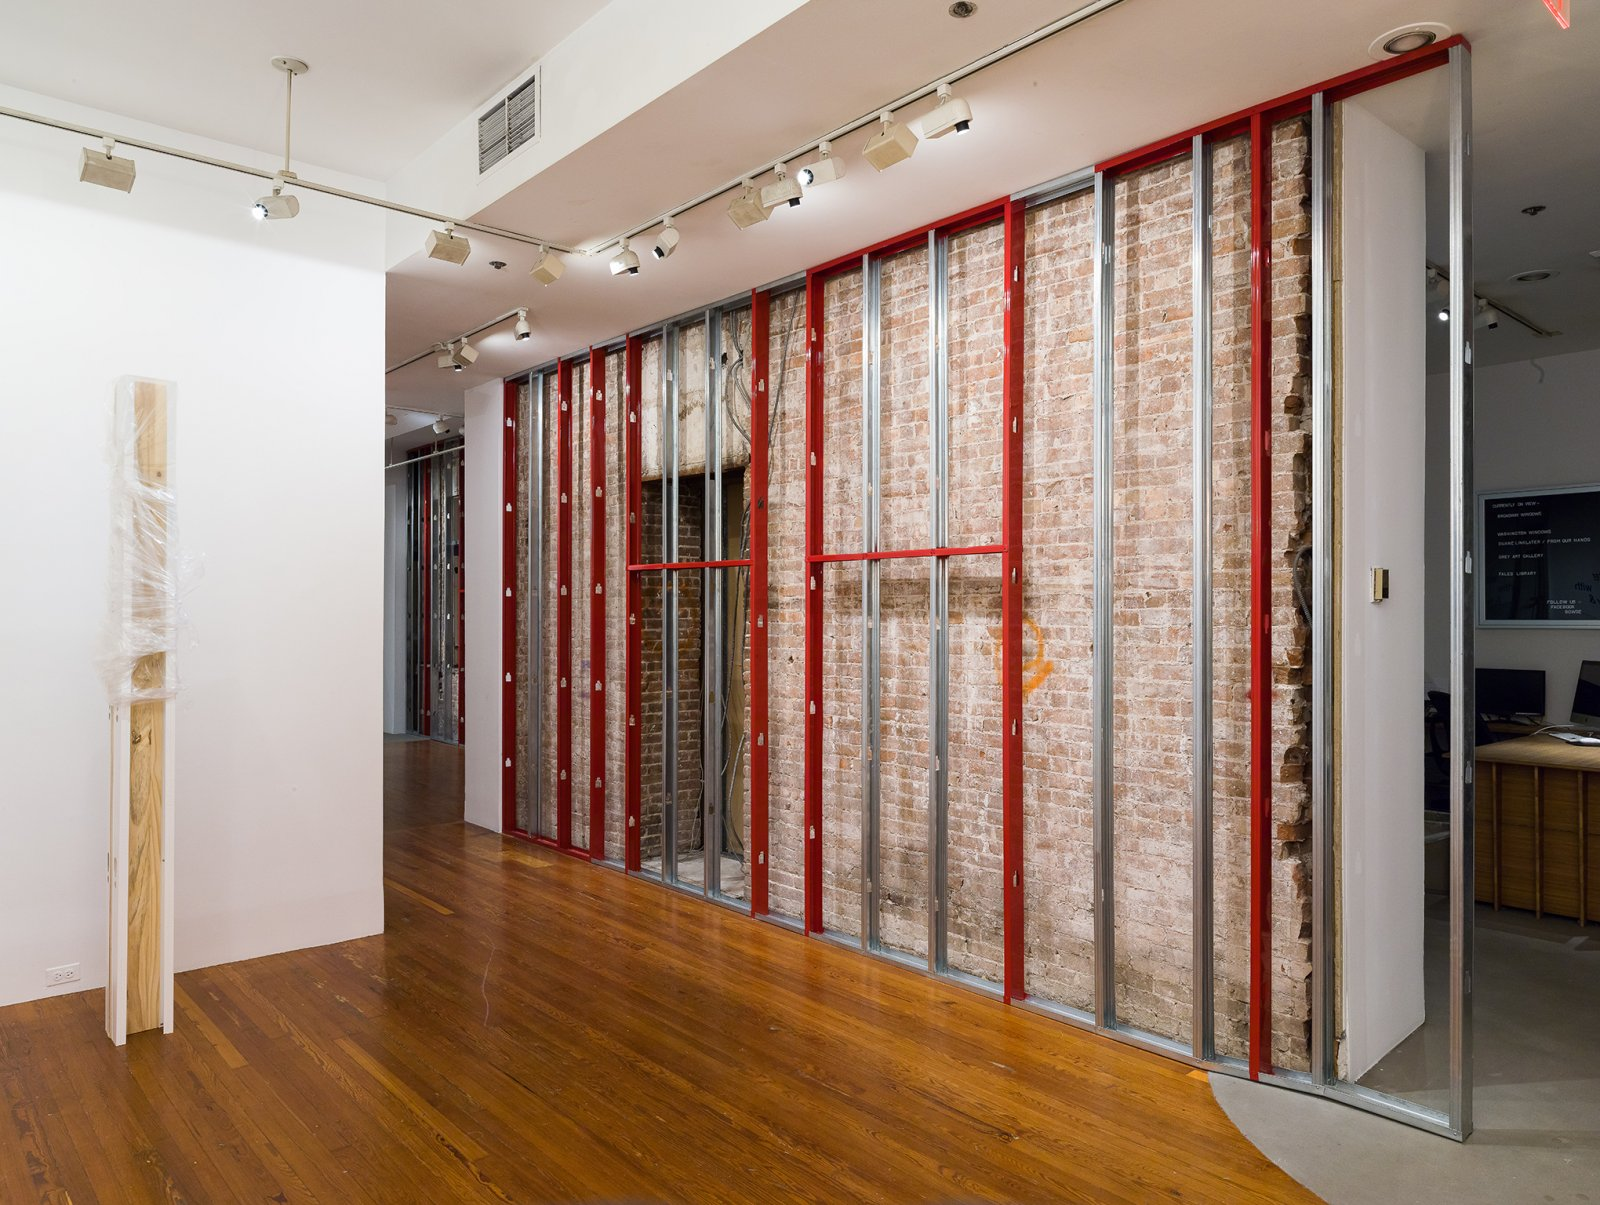 Duane Linklater, What Then Remainz, 2016, disassembled walls, powder coated steel, steel screws, dimensions variable. Installation view, From Our Hands, 80WSE Gallery, New York, 2016 by Duane Linklater